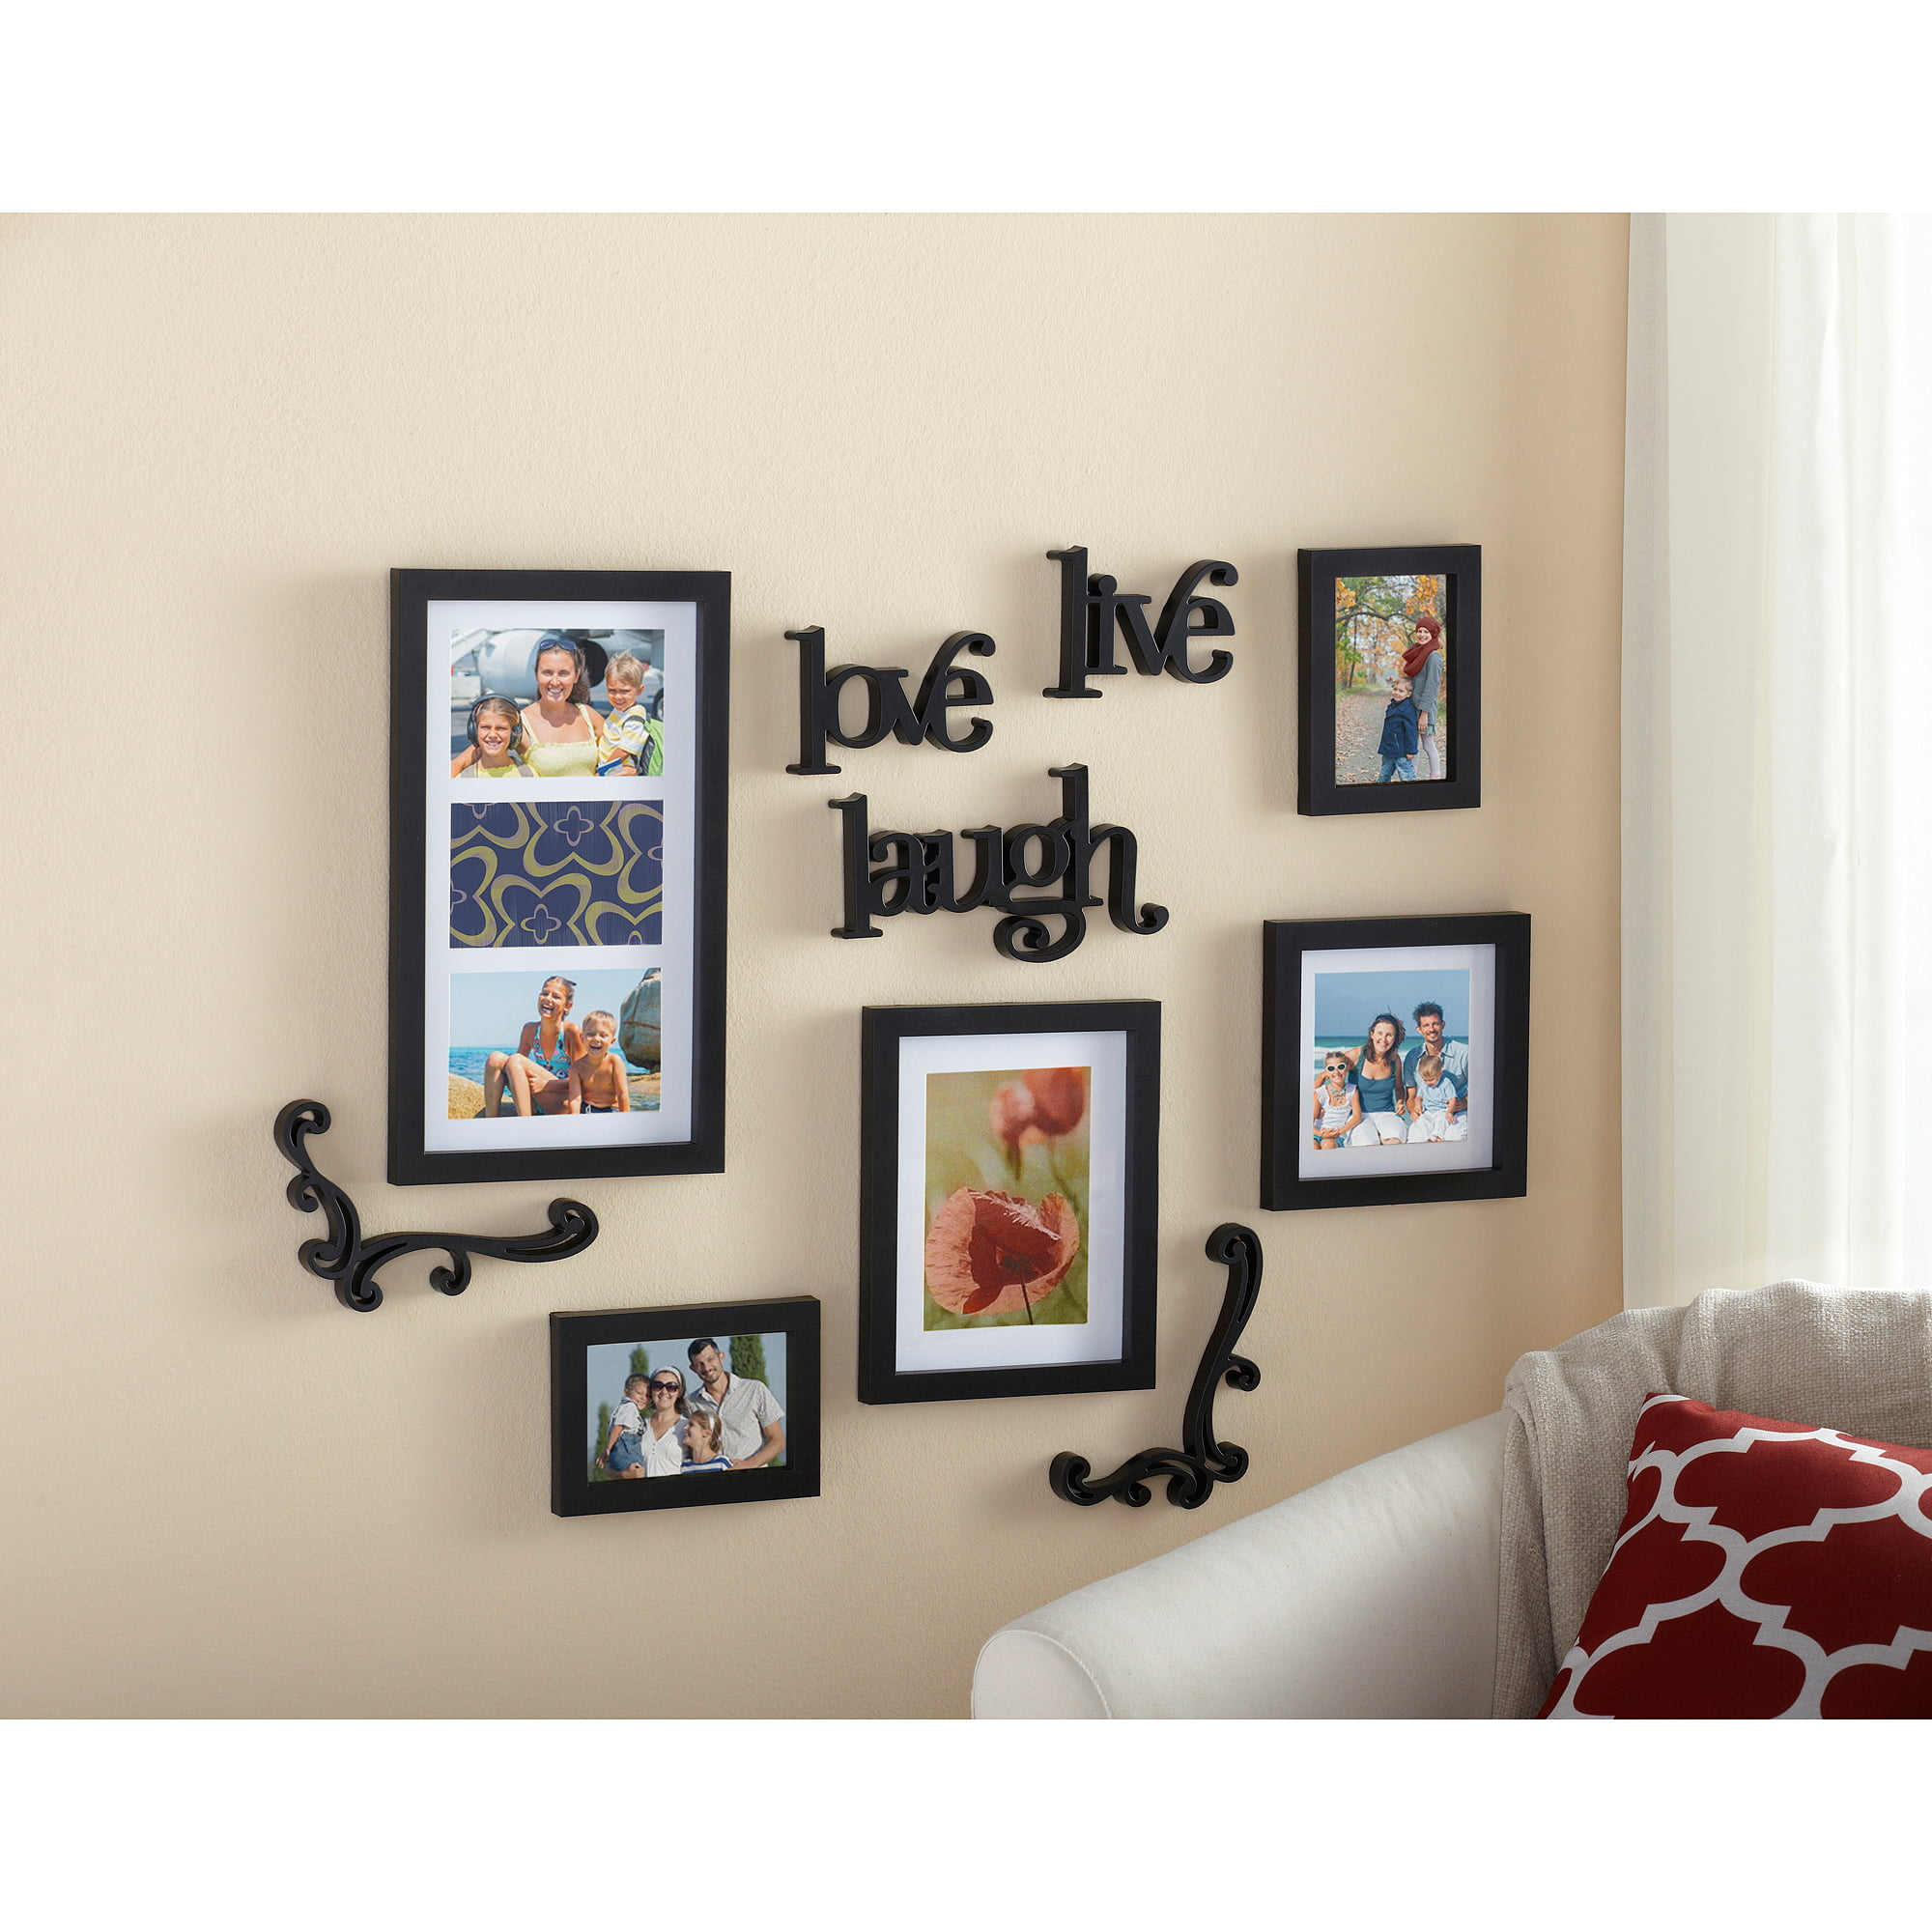 Mainstays 10 piece expressions wall frame set walmart amipublicfo Image collections